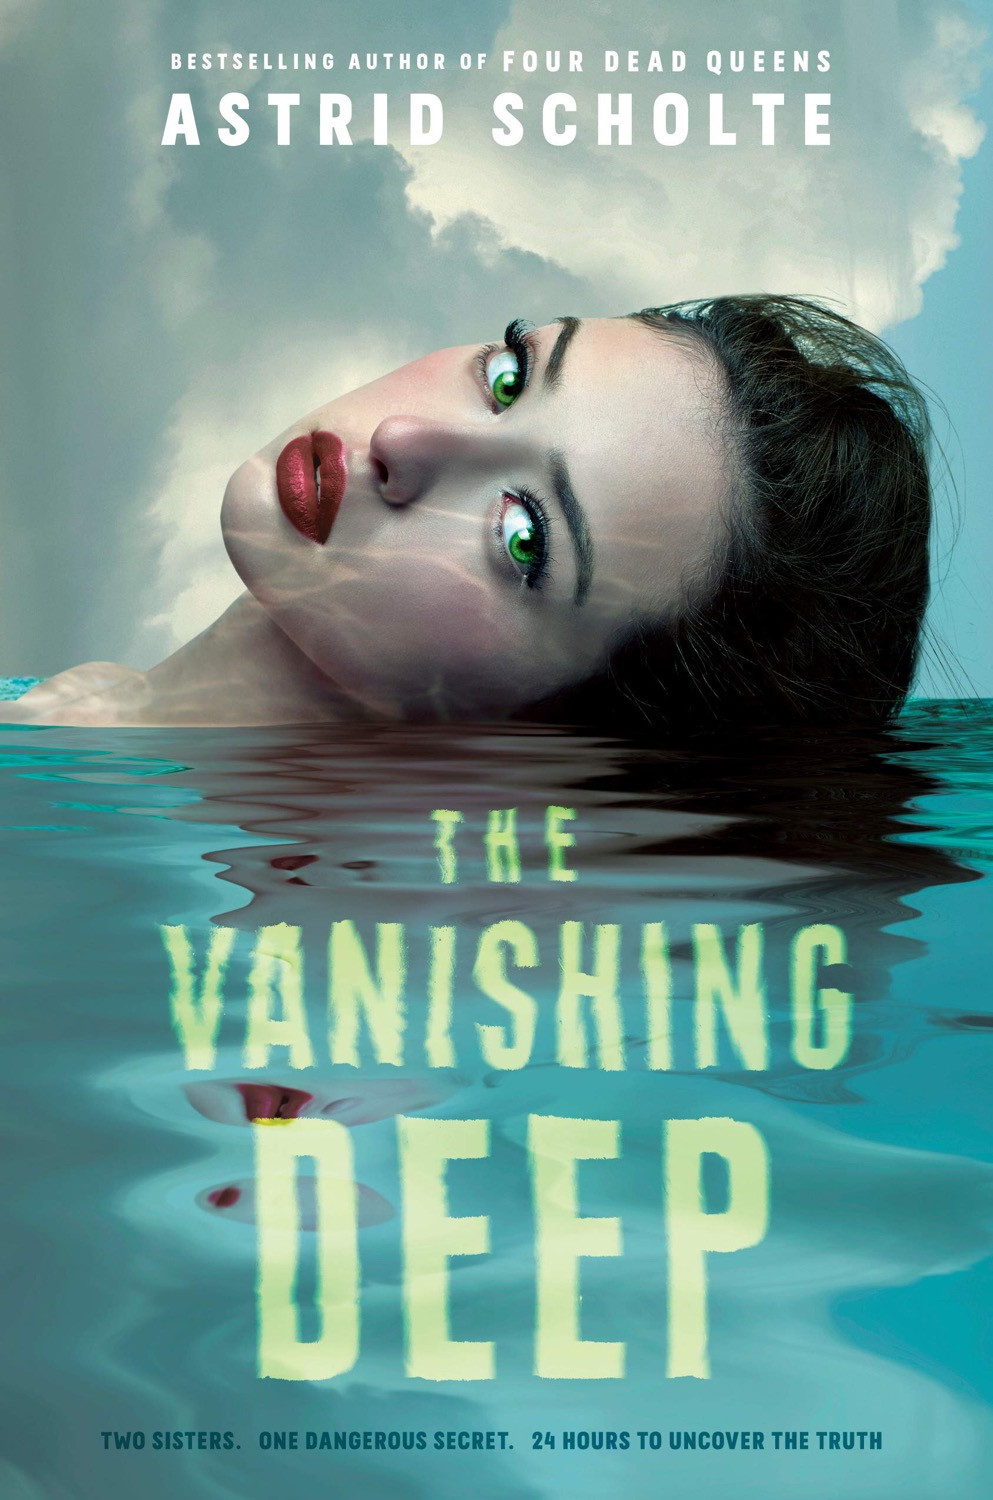 Cover of The Vanishing Deep by Astrid Scholte